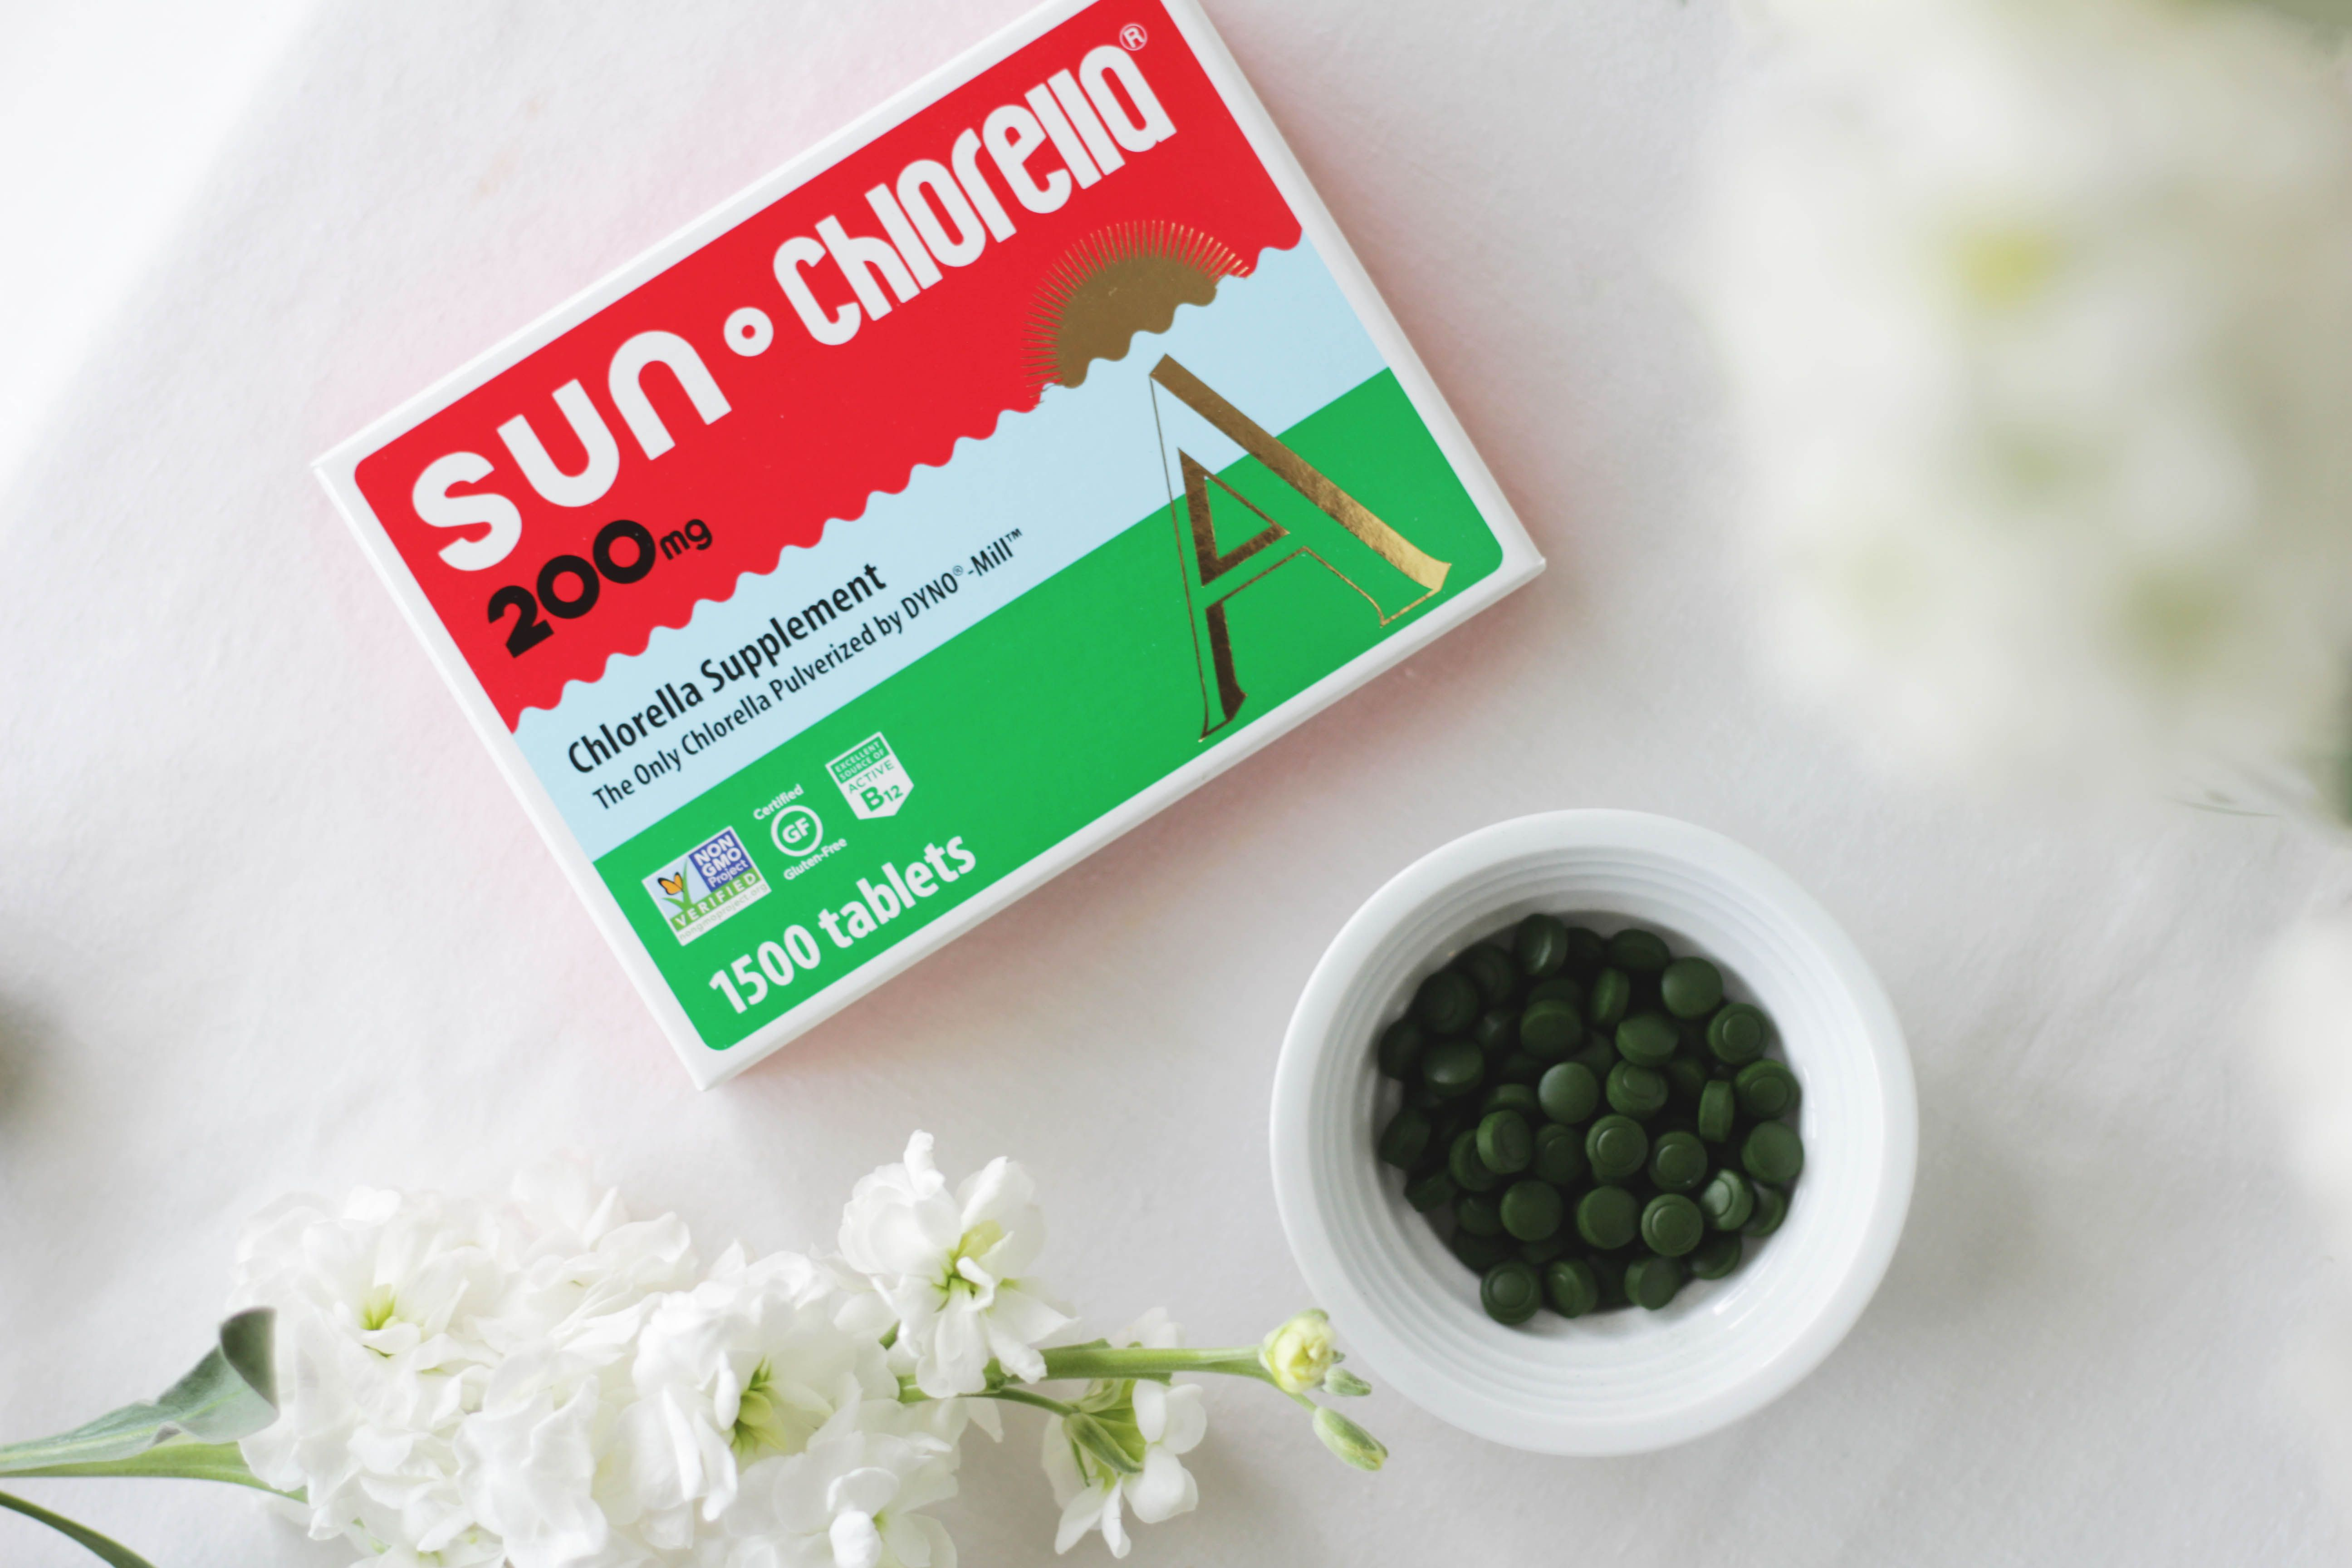 Sun Chlorella - A True Superfood